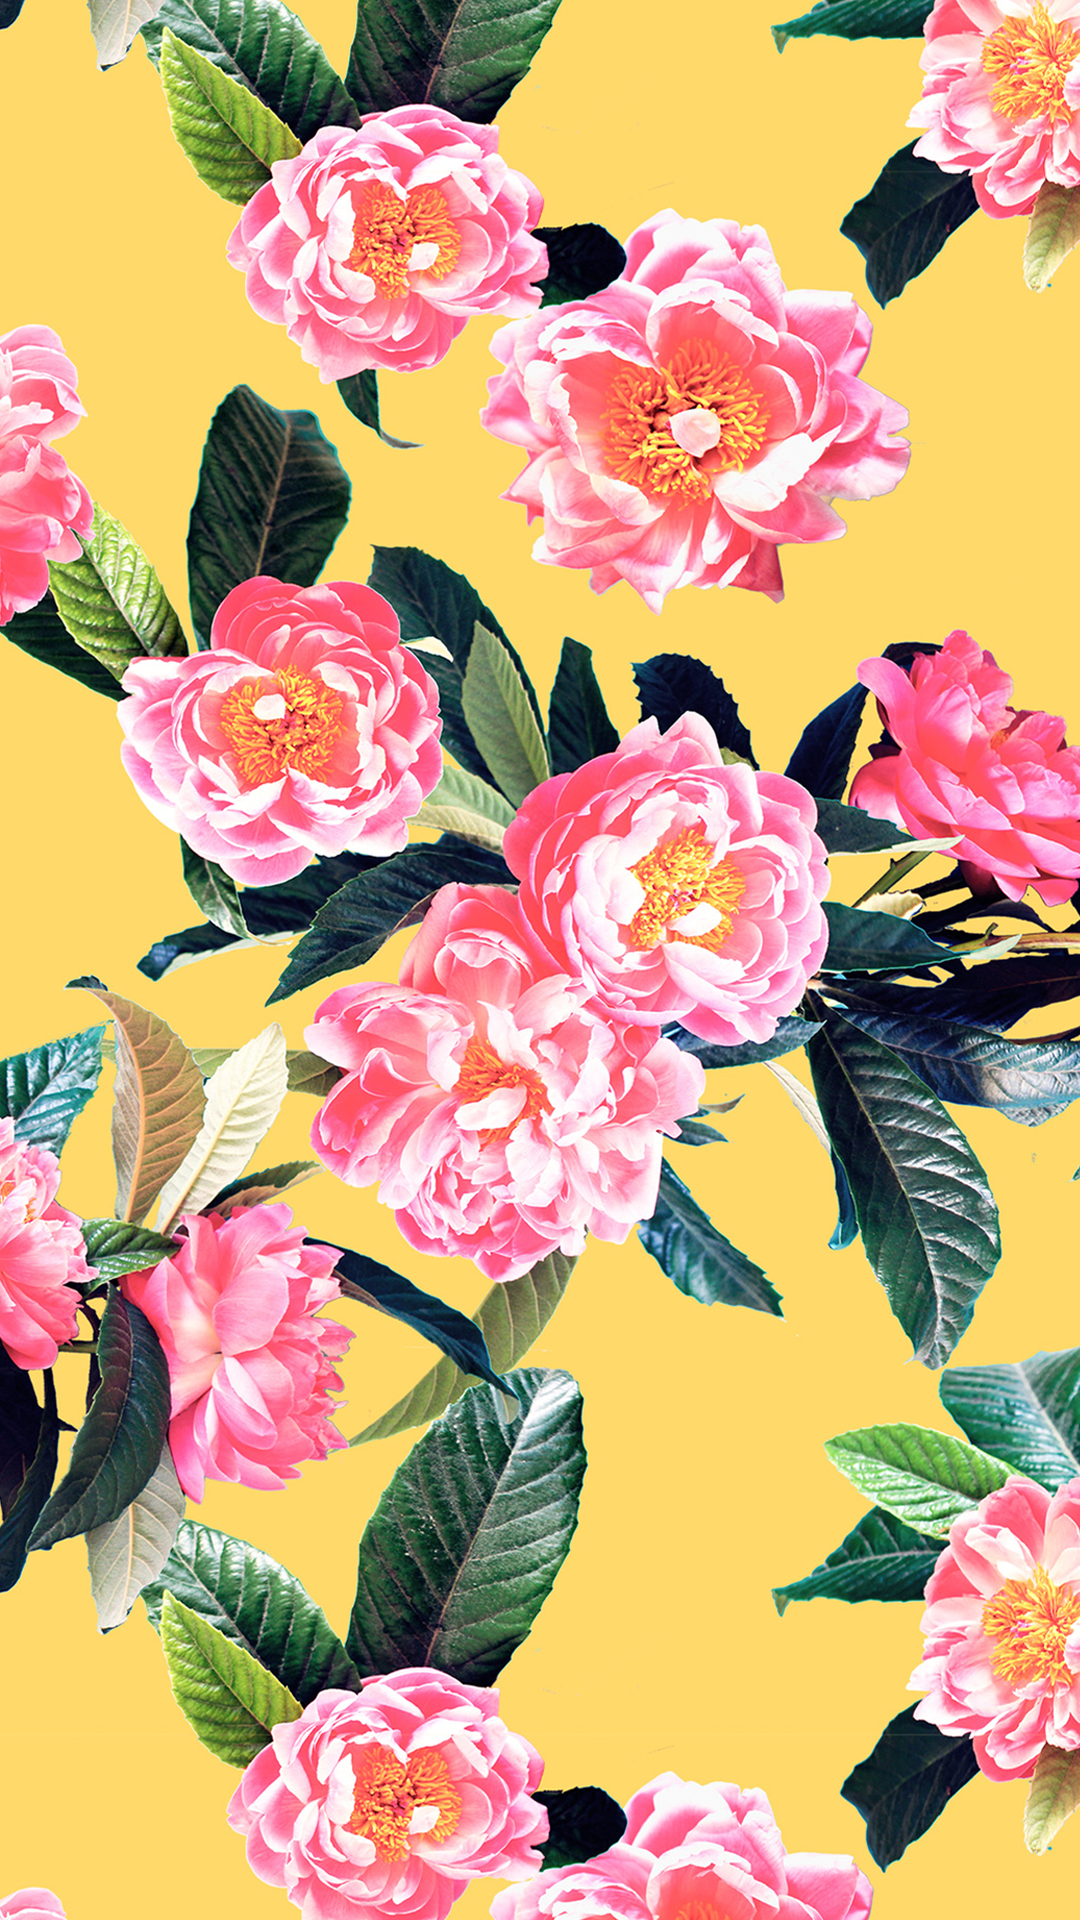 DRESS UP YOUR TECH Flower phone wallpaper, Floral